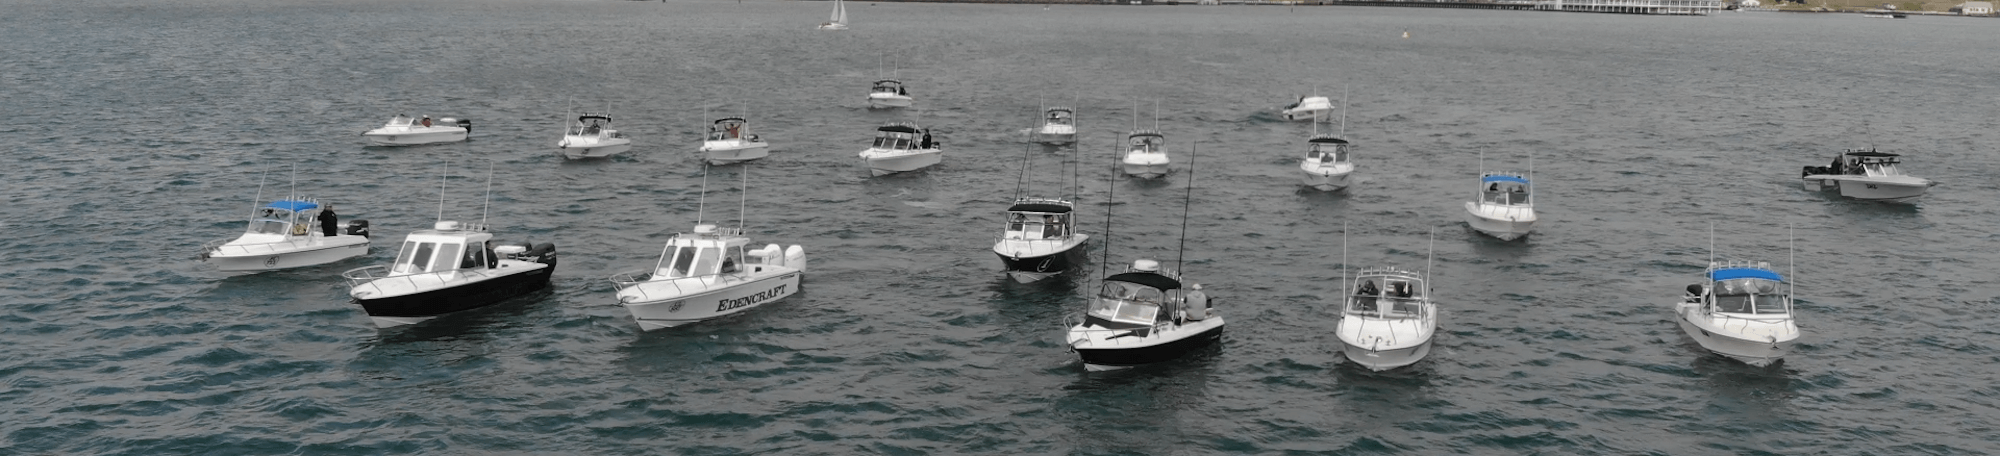 Edencraft boats at 2018 Edencraft Family Day